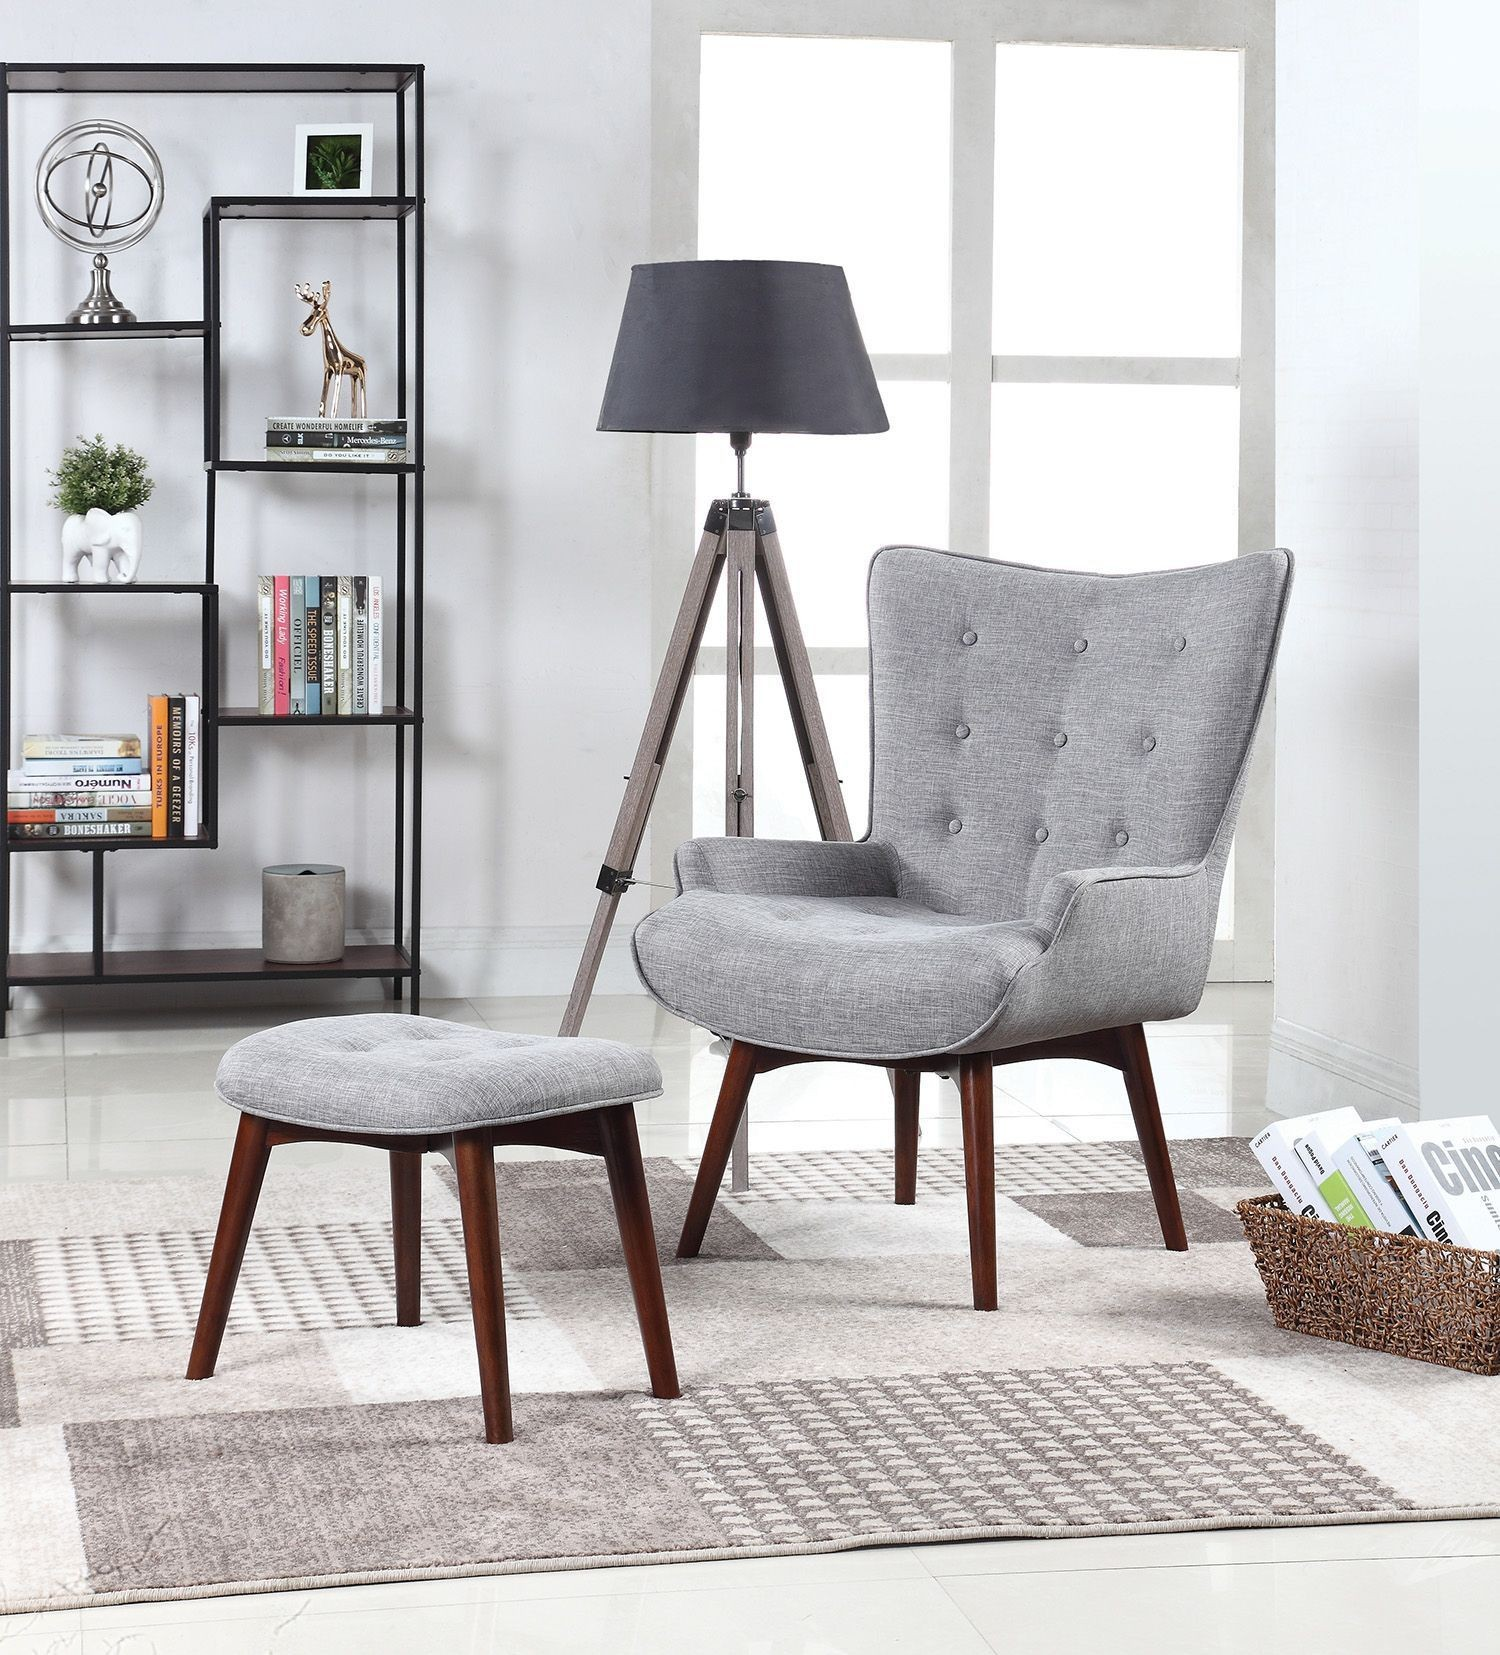 Living Room With Mismatched Accent Chairs: Gray Accent Chair With Ottoman By Scott Living